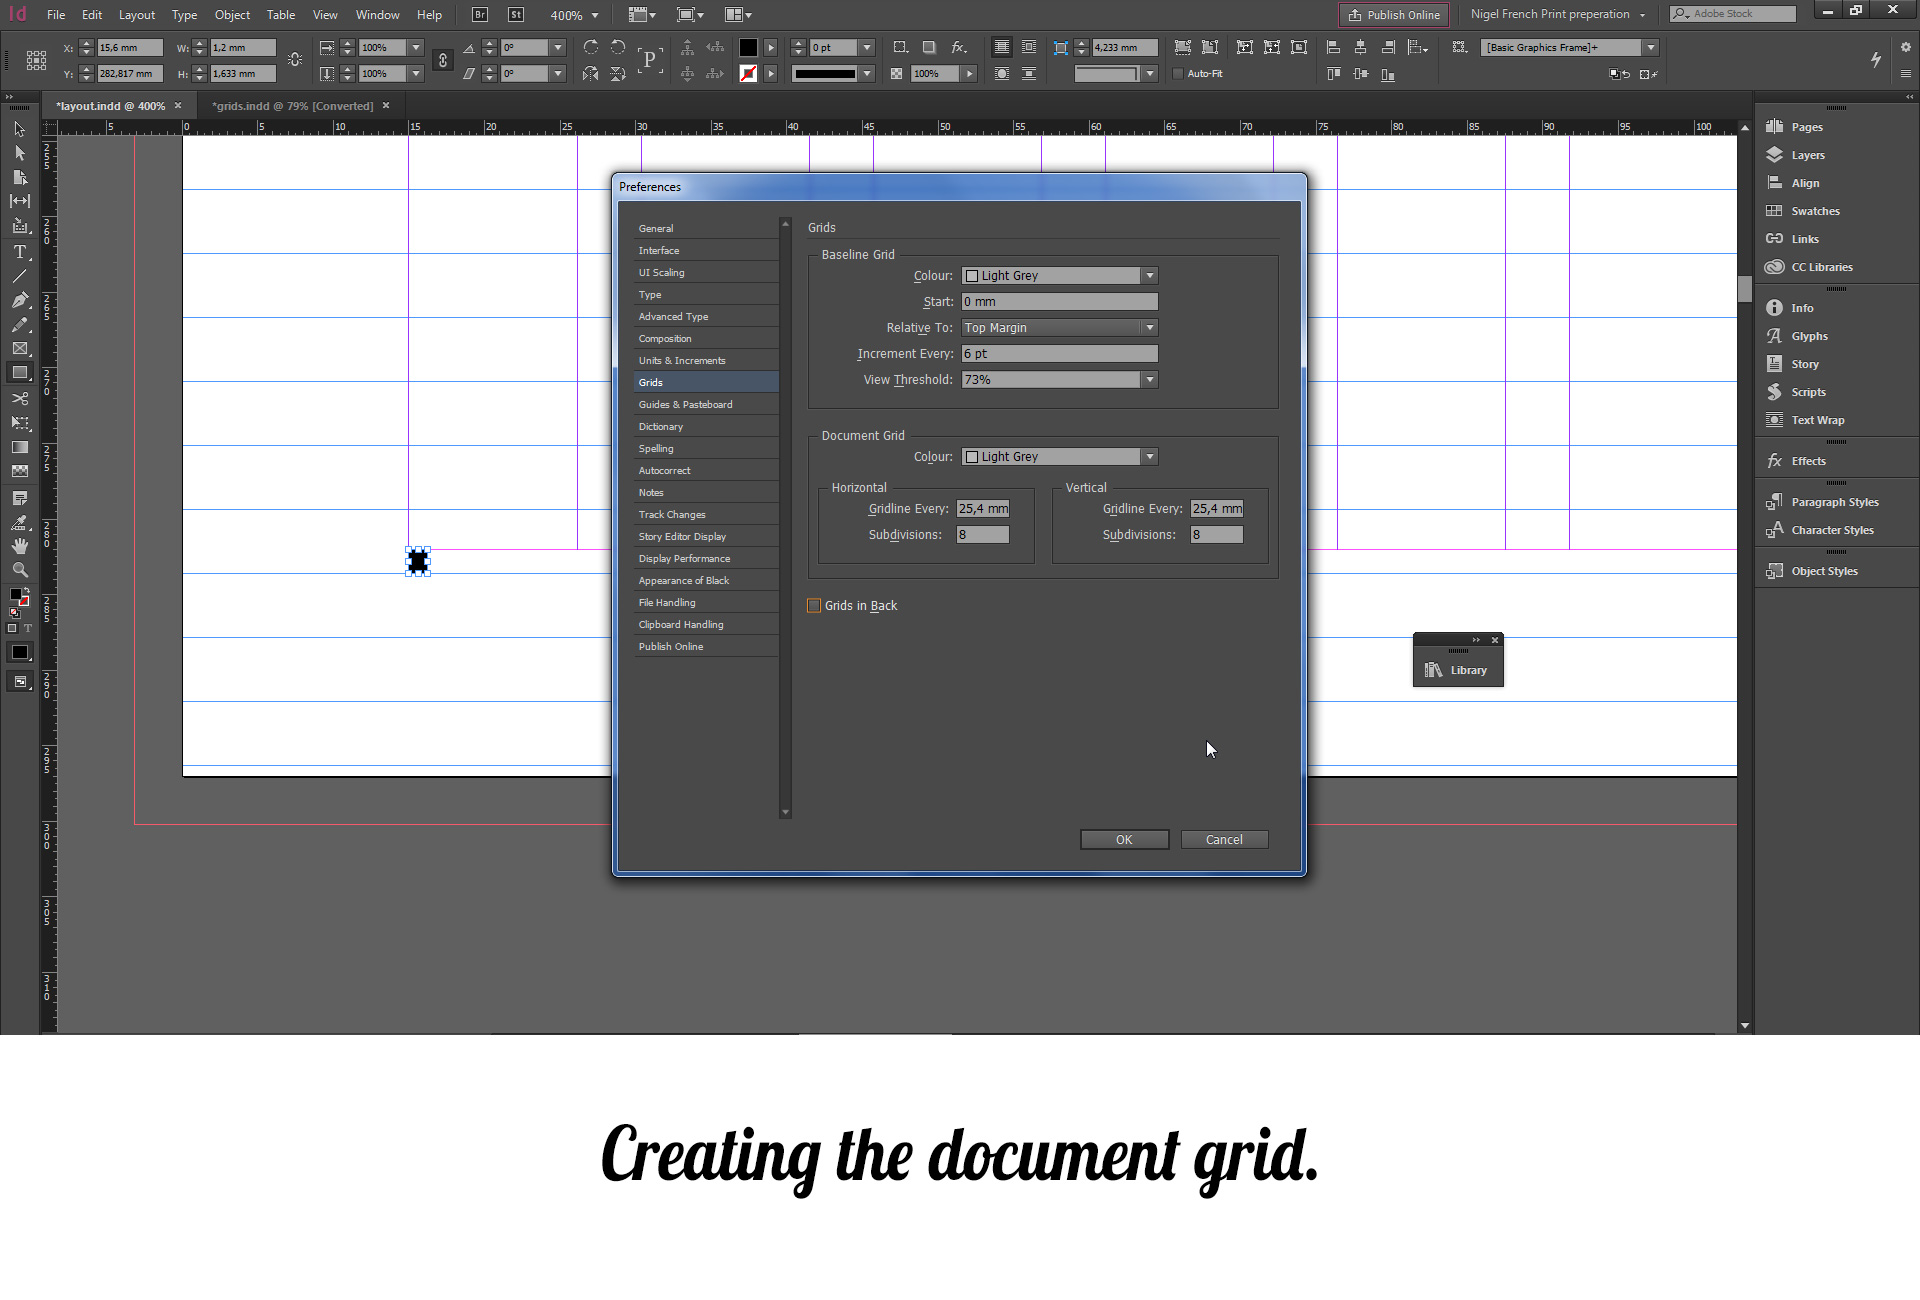 creating-the-document-grid